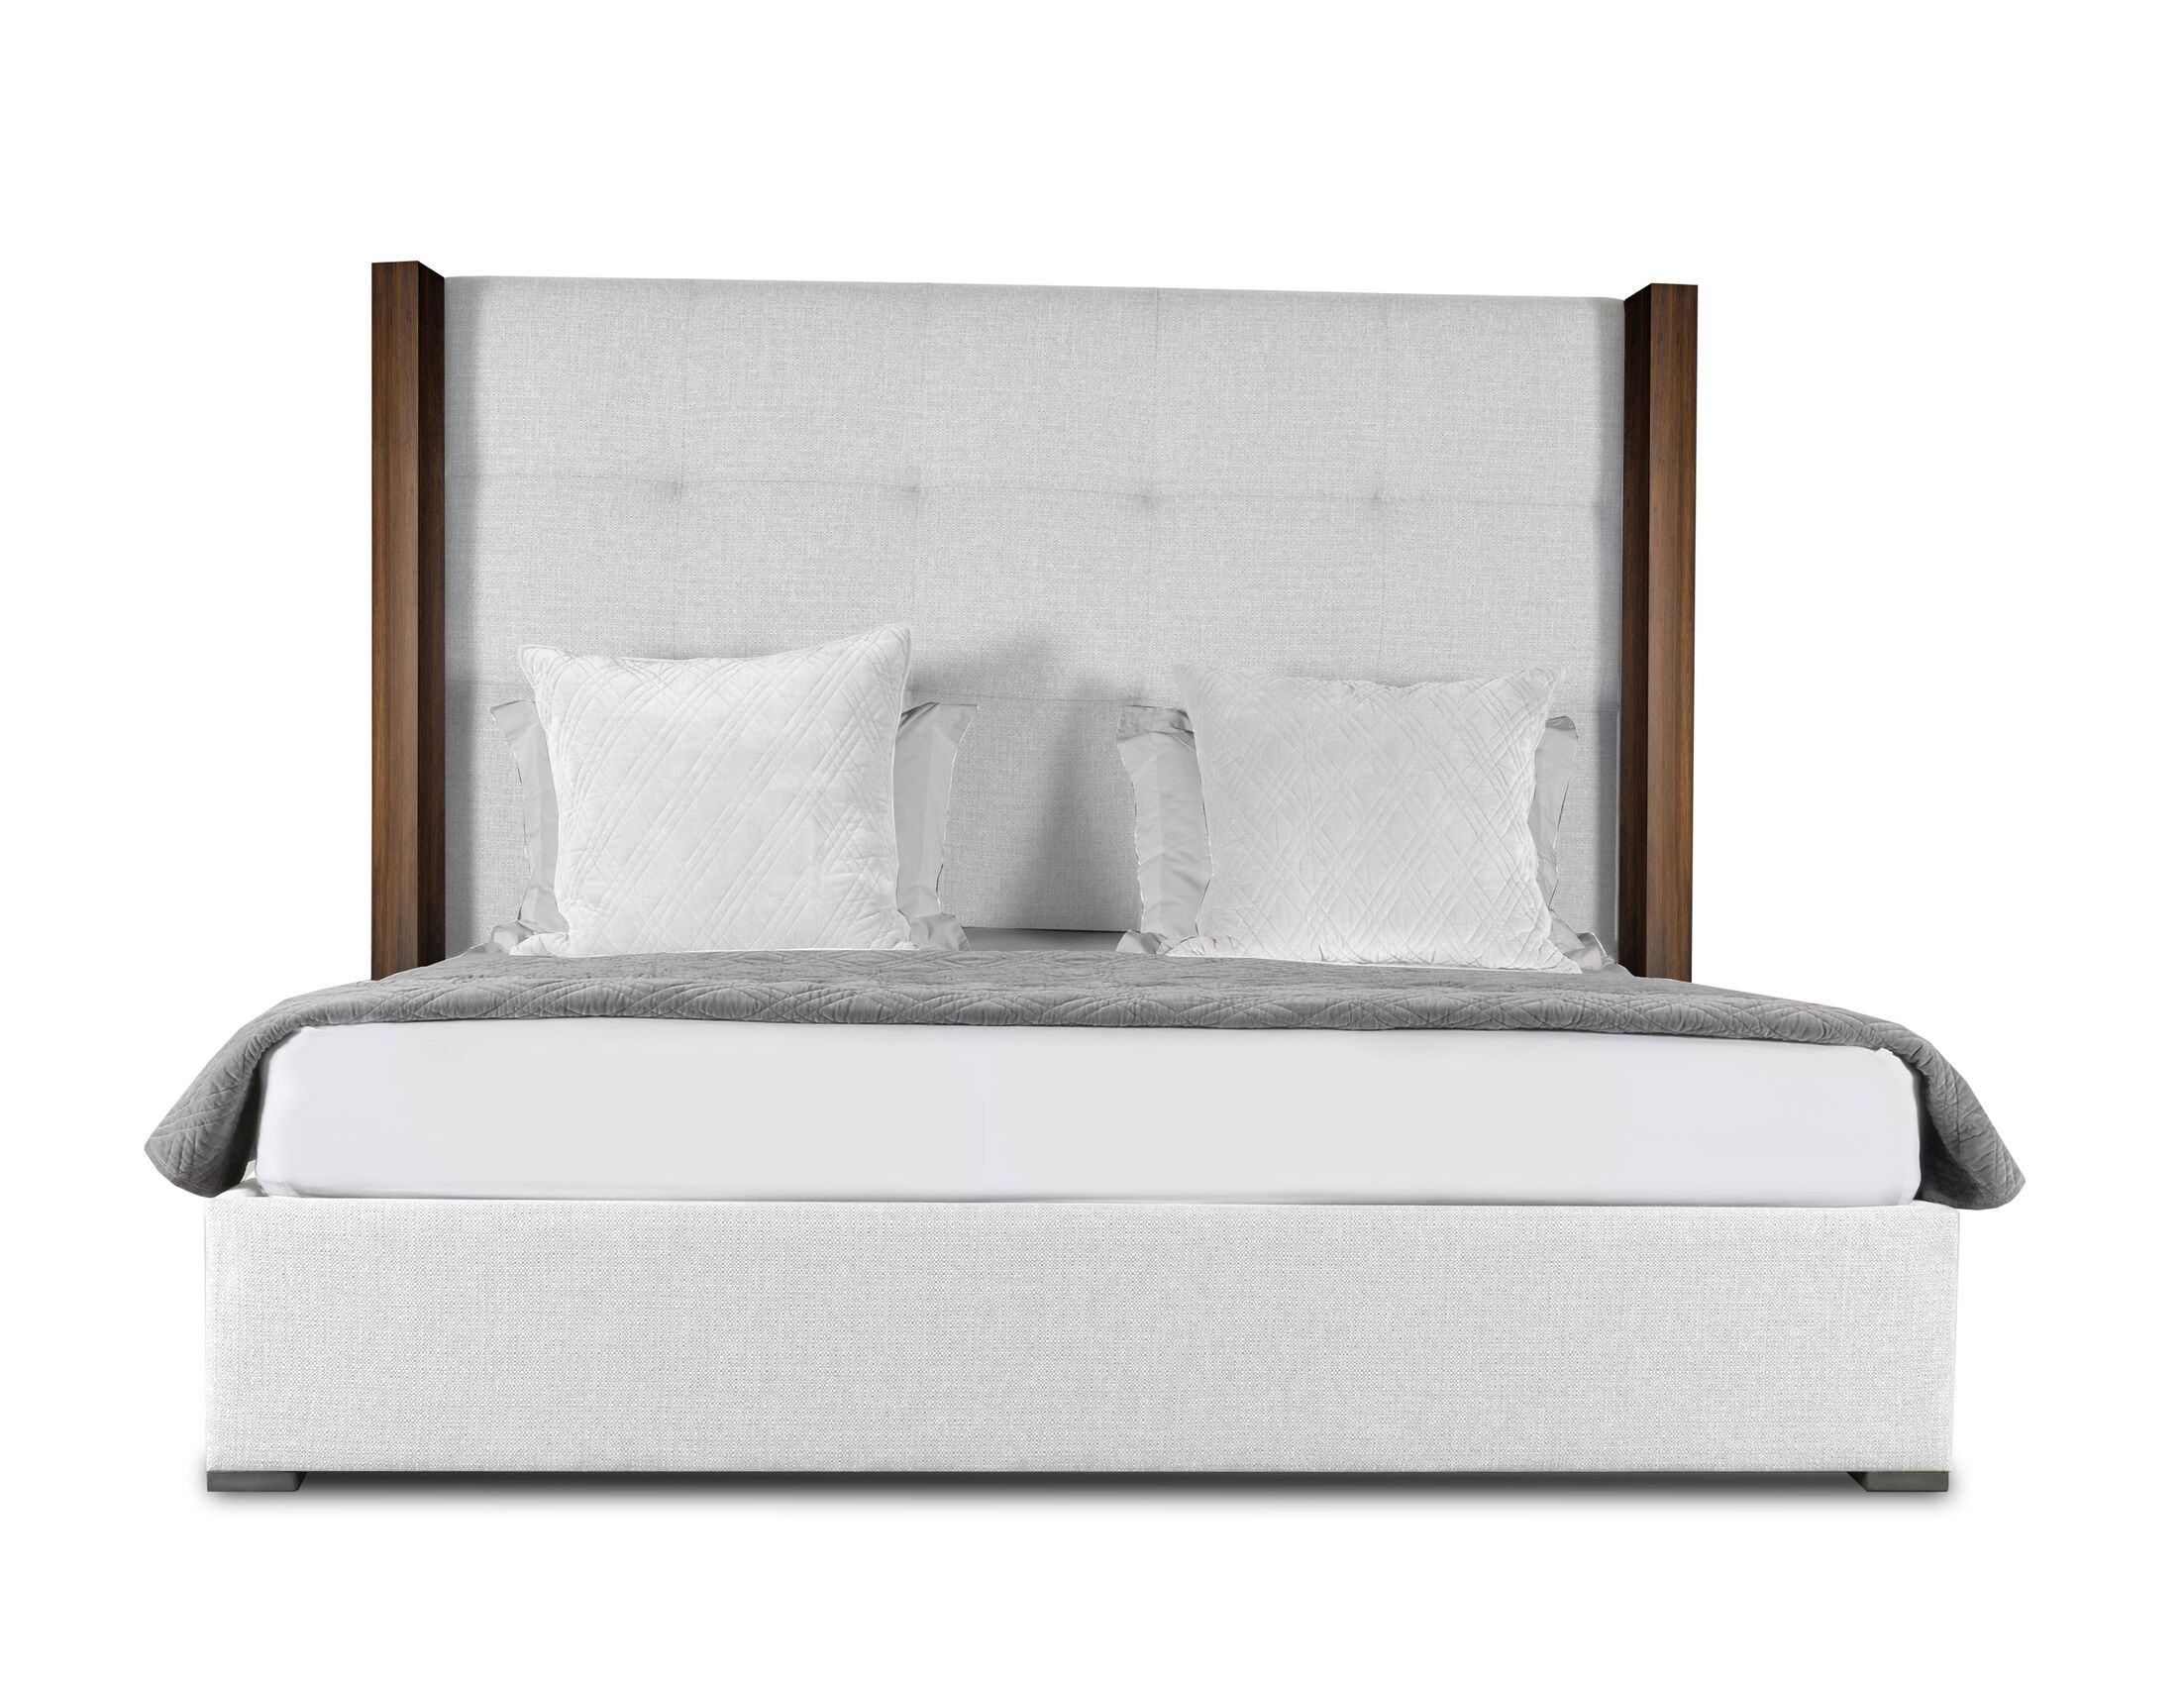 Harborcreek Button Tufted Upholstered Platform Bed Size: Mid Height King, Color: White